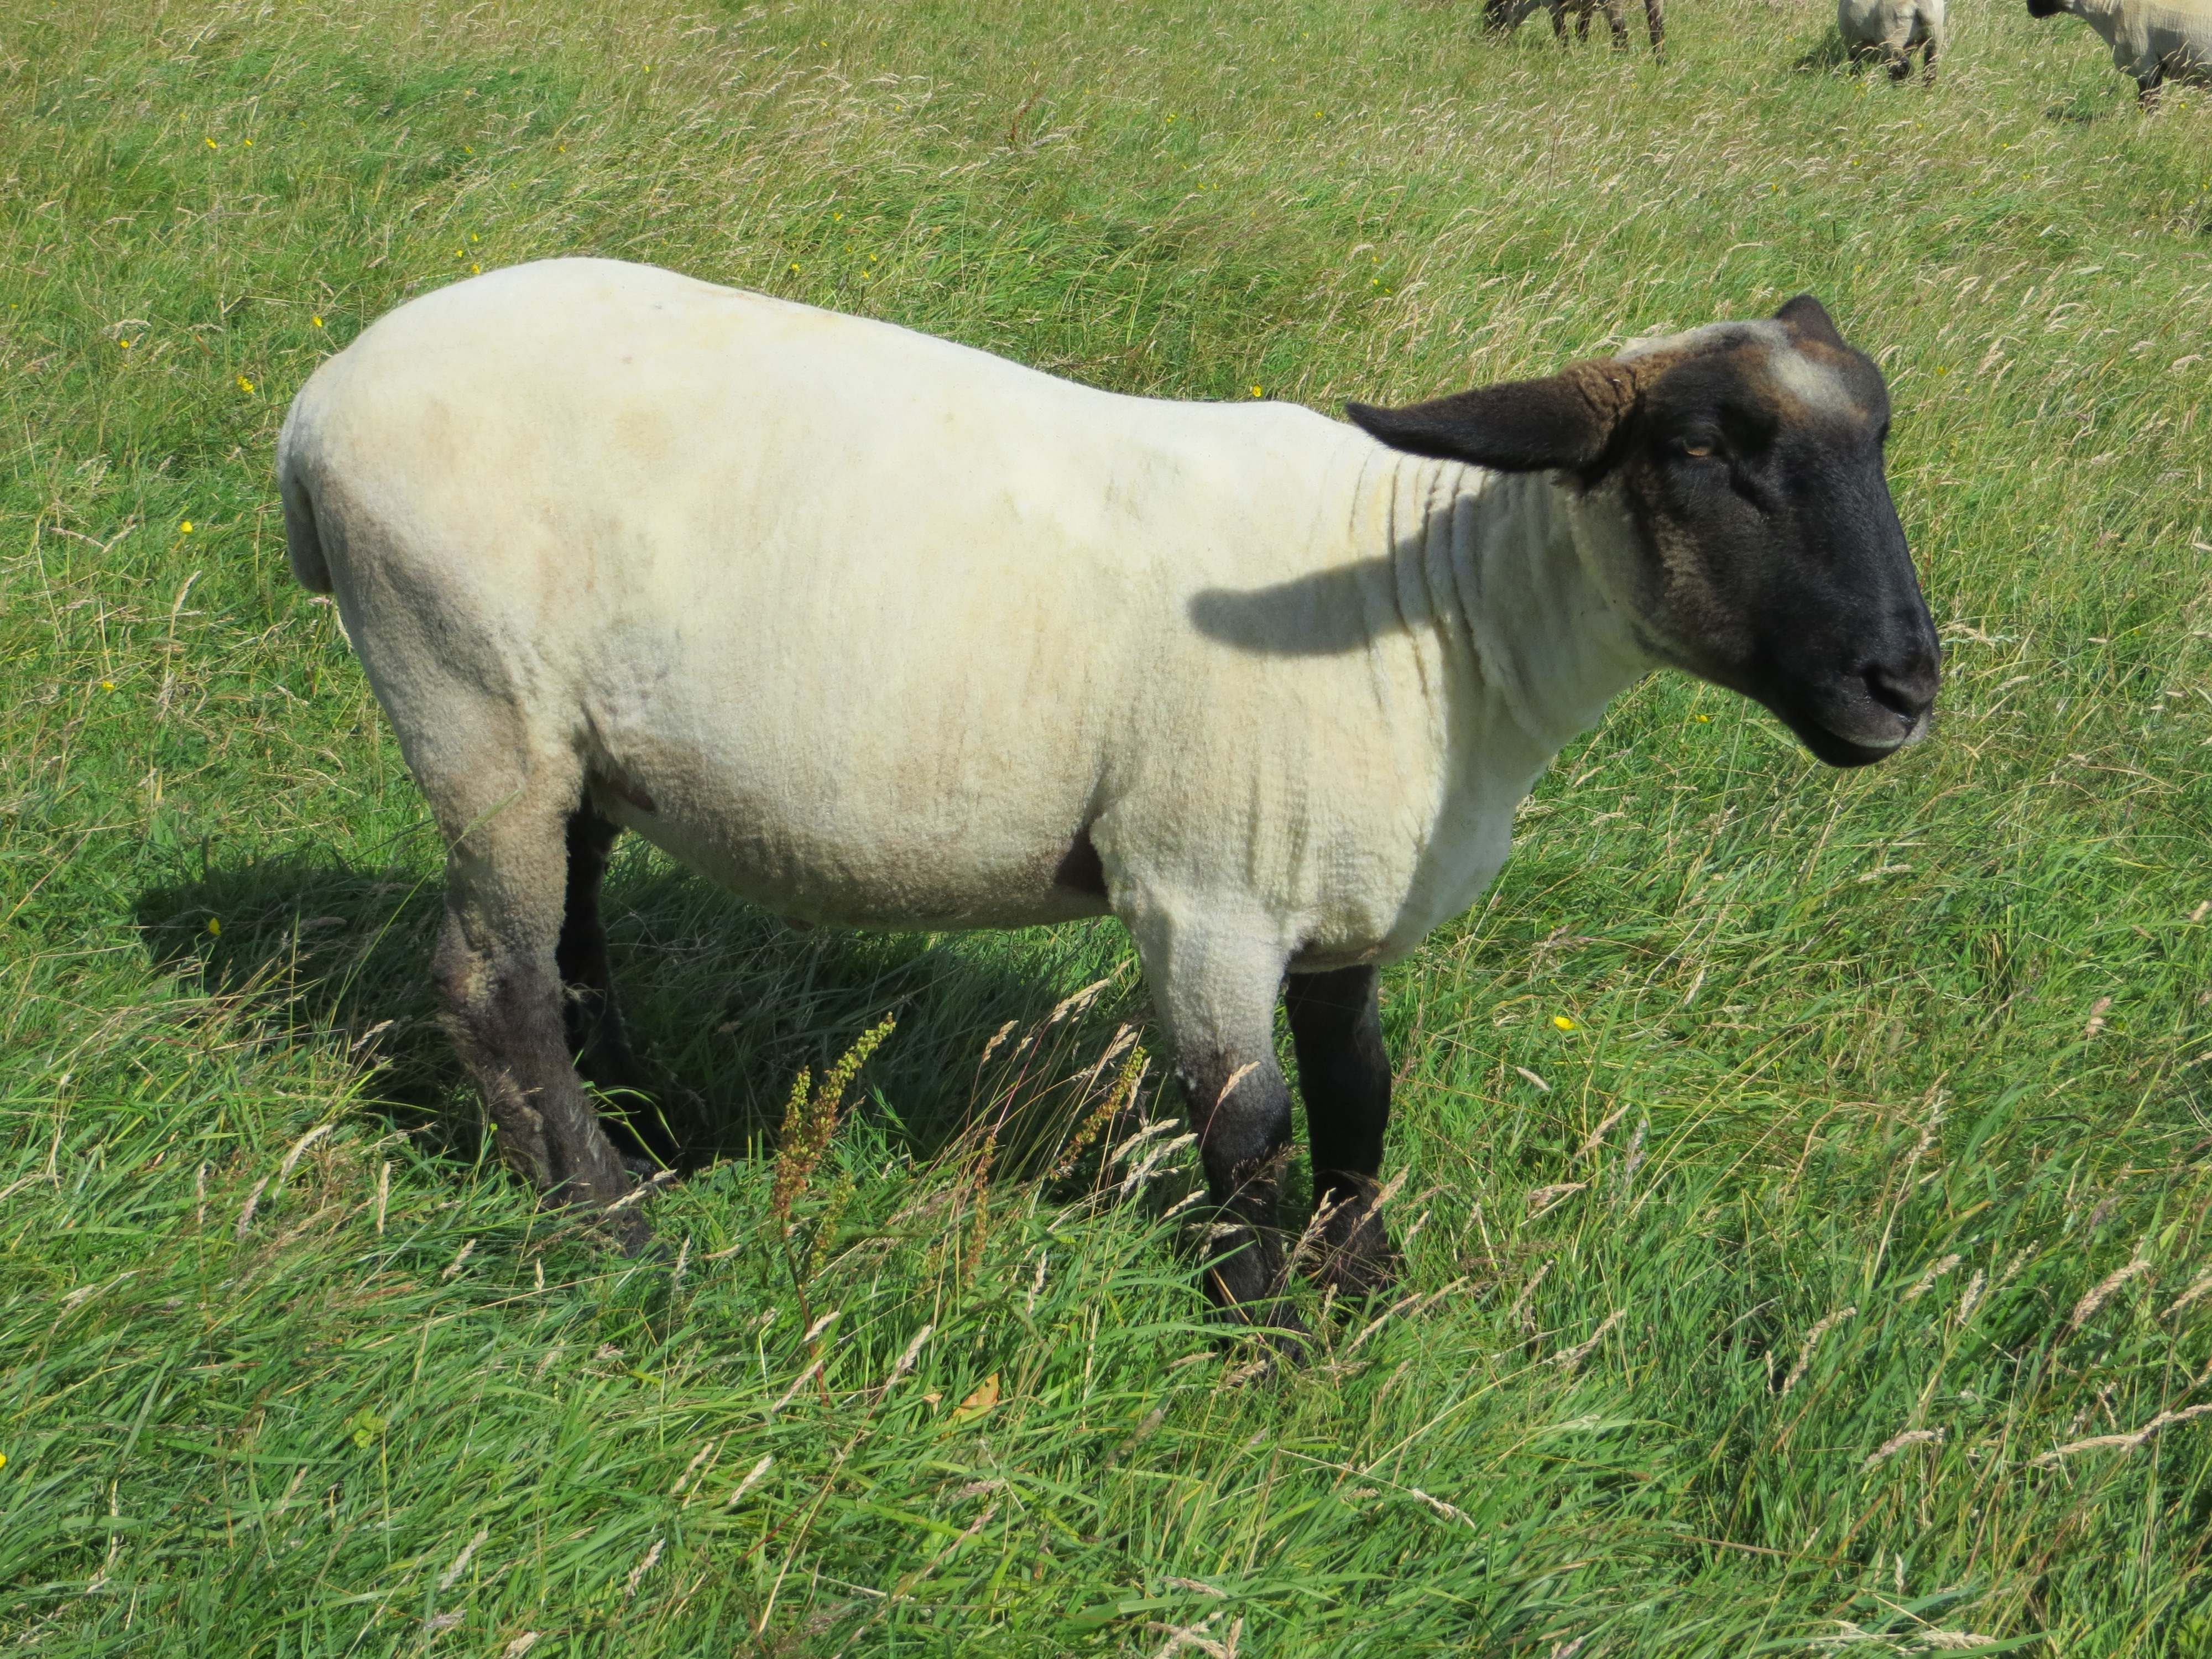 Shiny shorn sheep